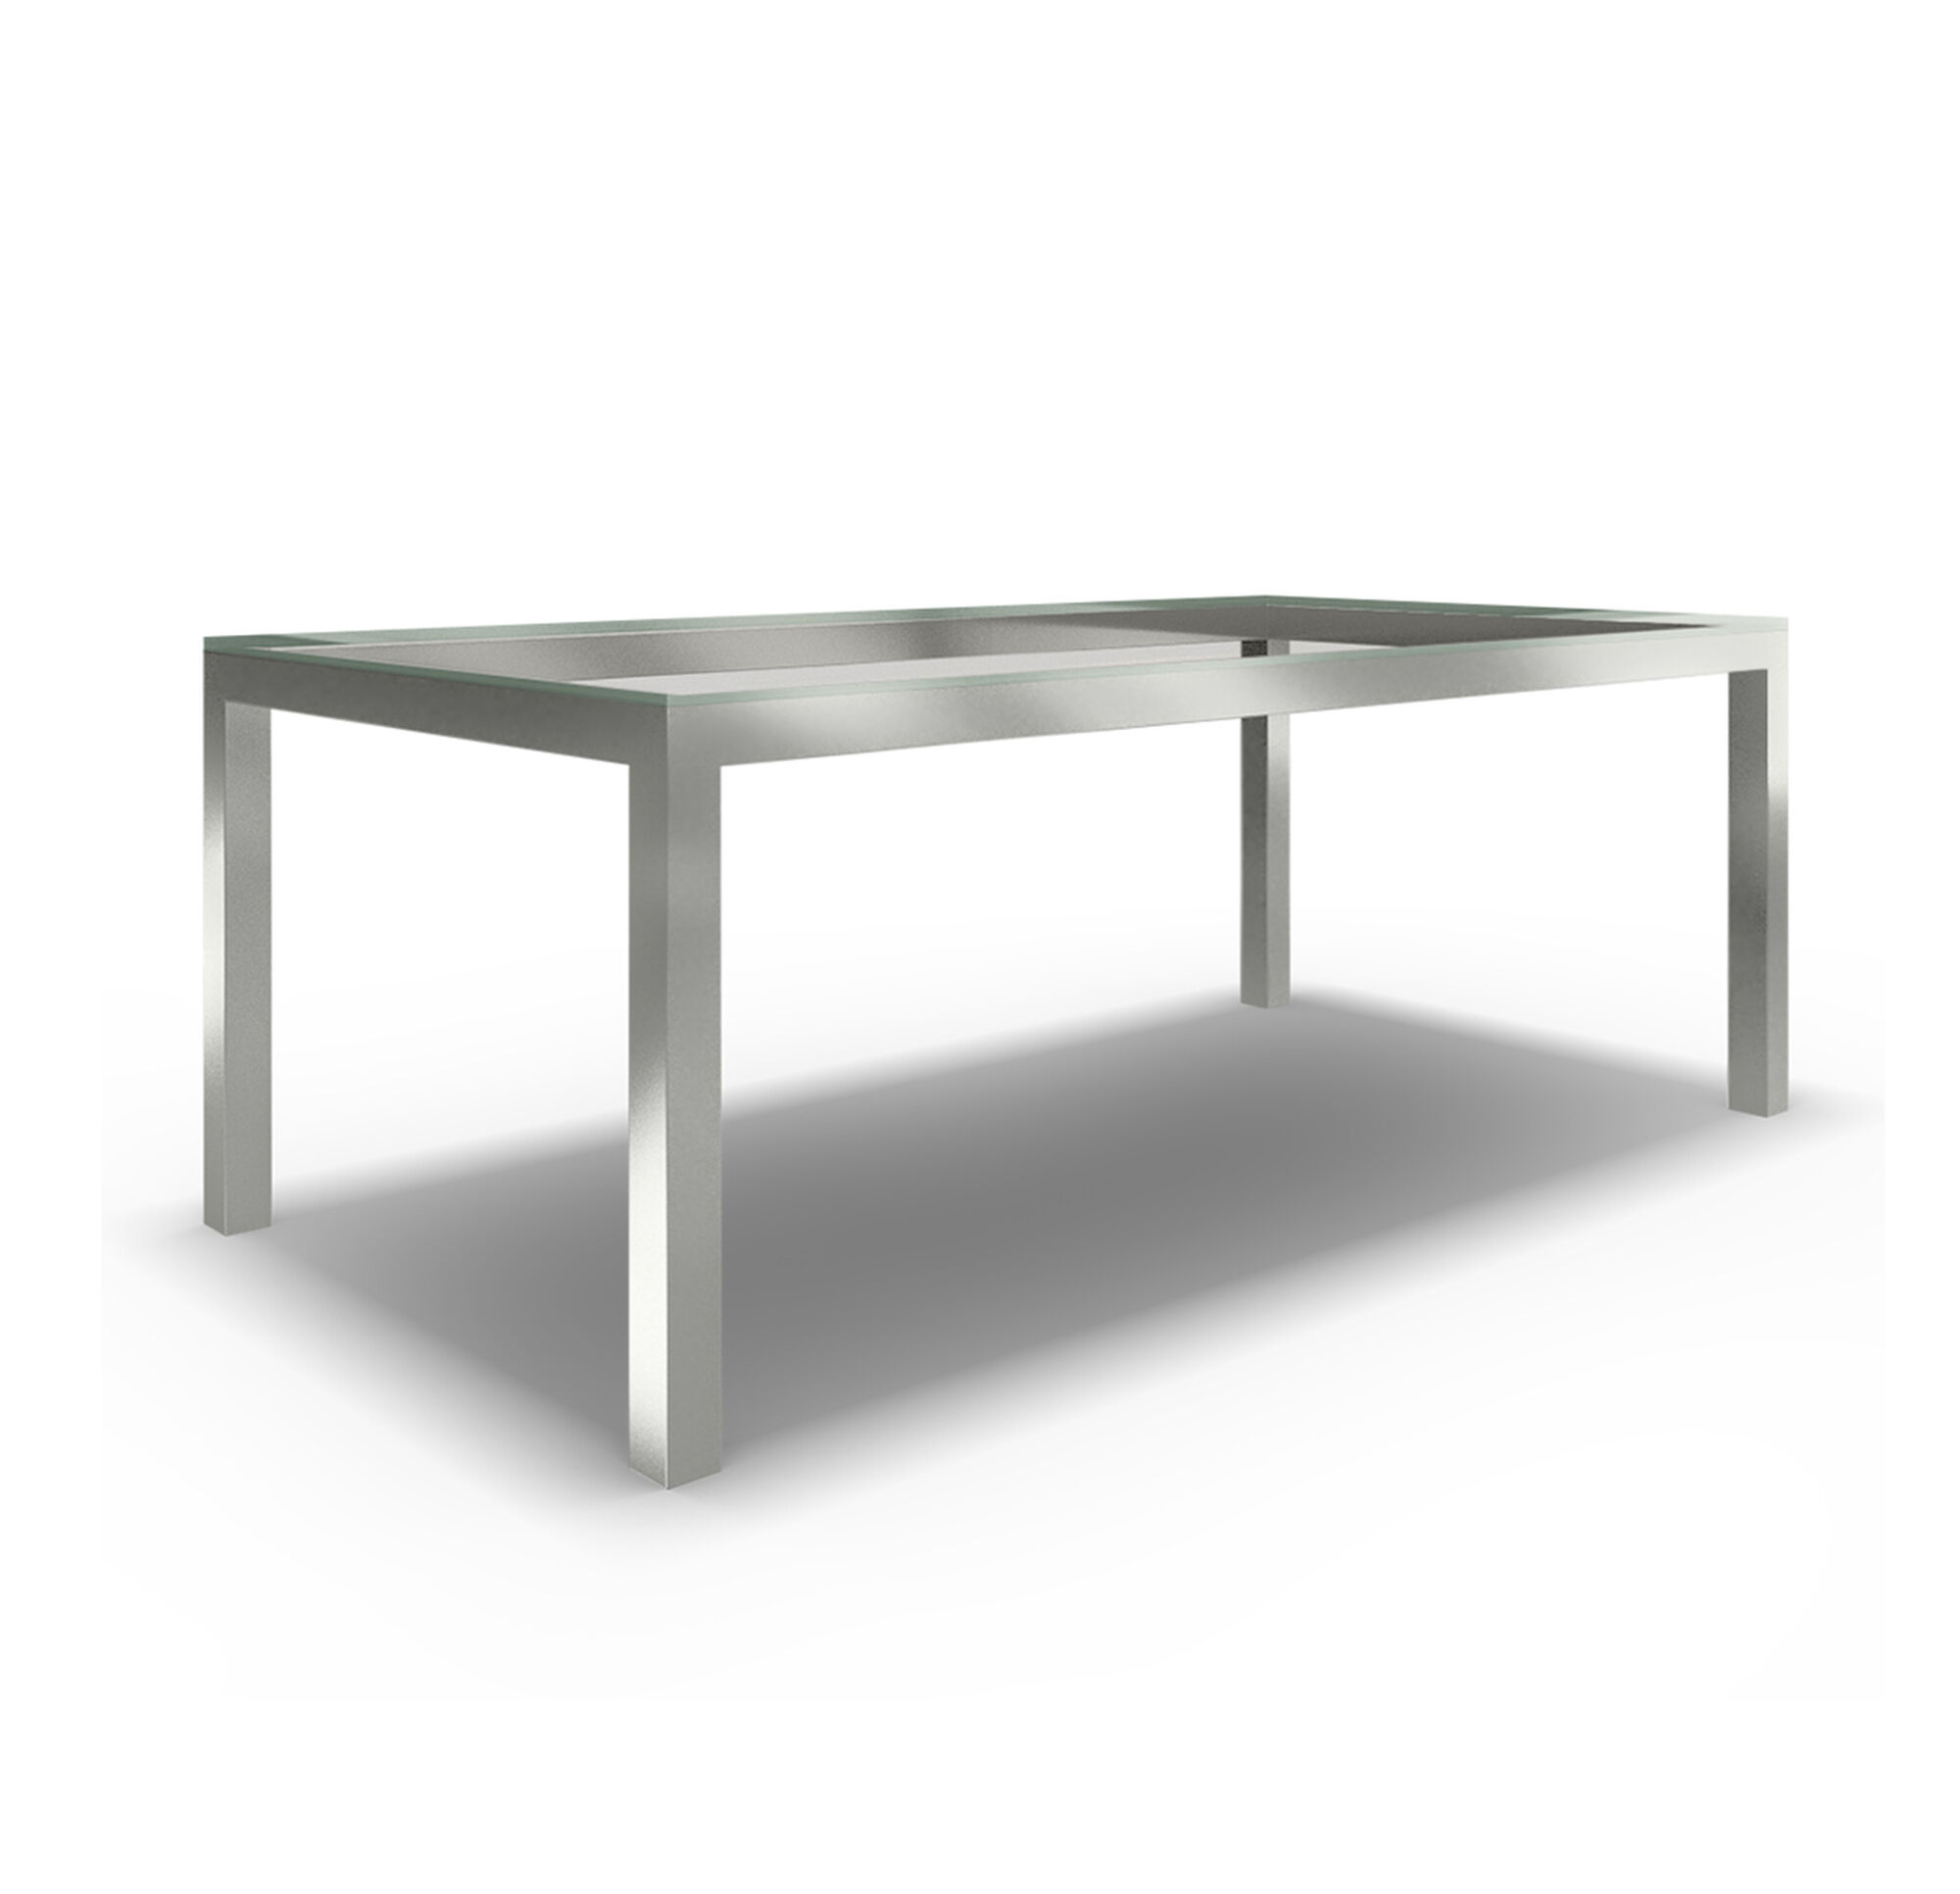 CLASSIC PARSONS DINING TABLE POLISHED STAINLESS STEEL - Square parsons dining table